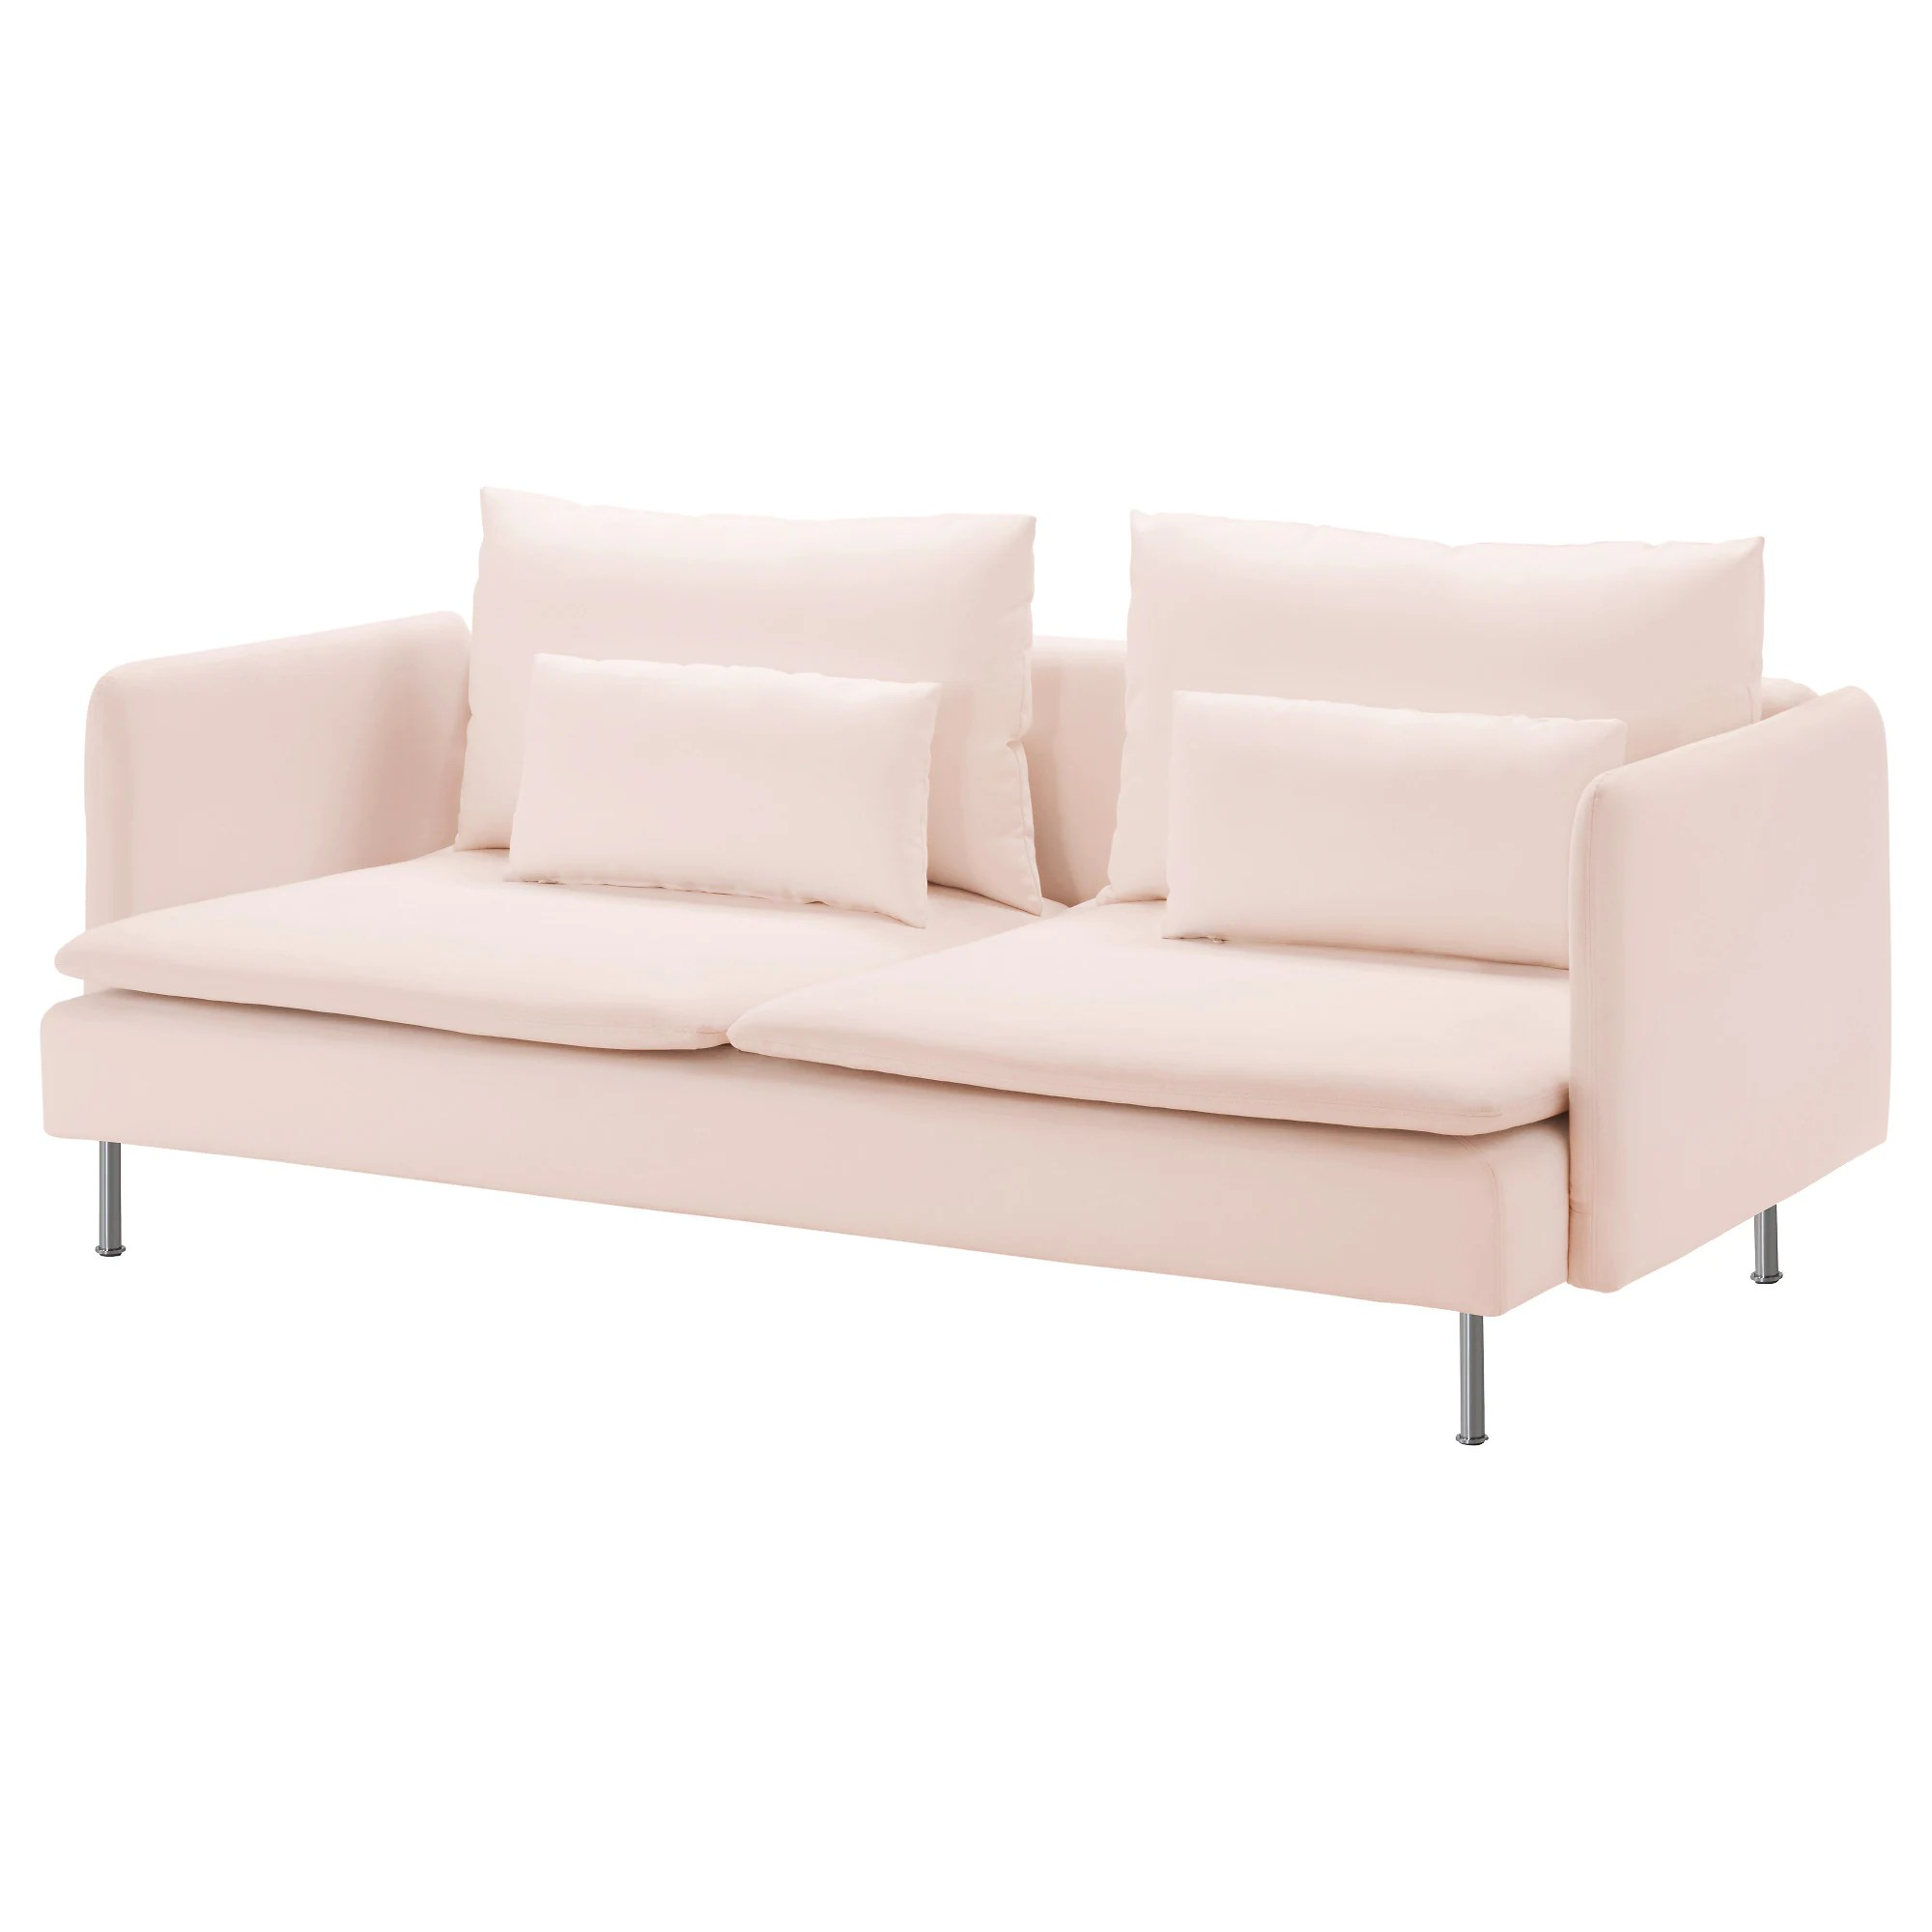 Sofa Ikea SÖderhamn Sofa Samsta Light Pink